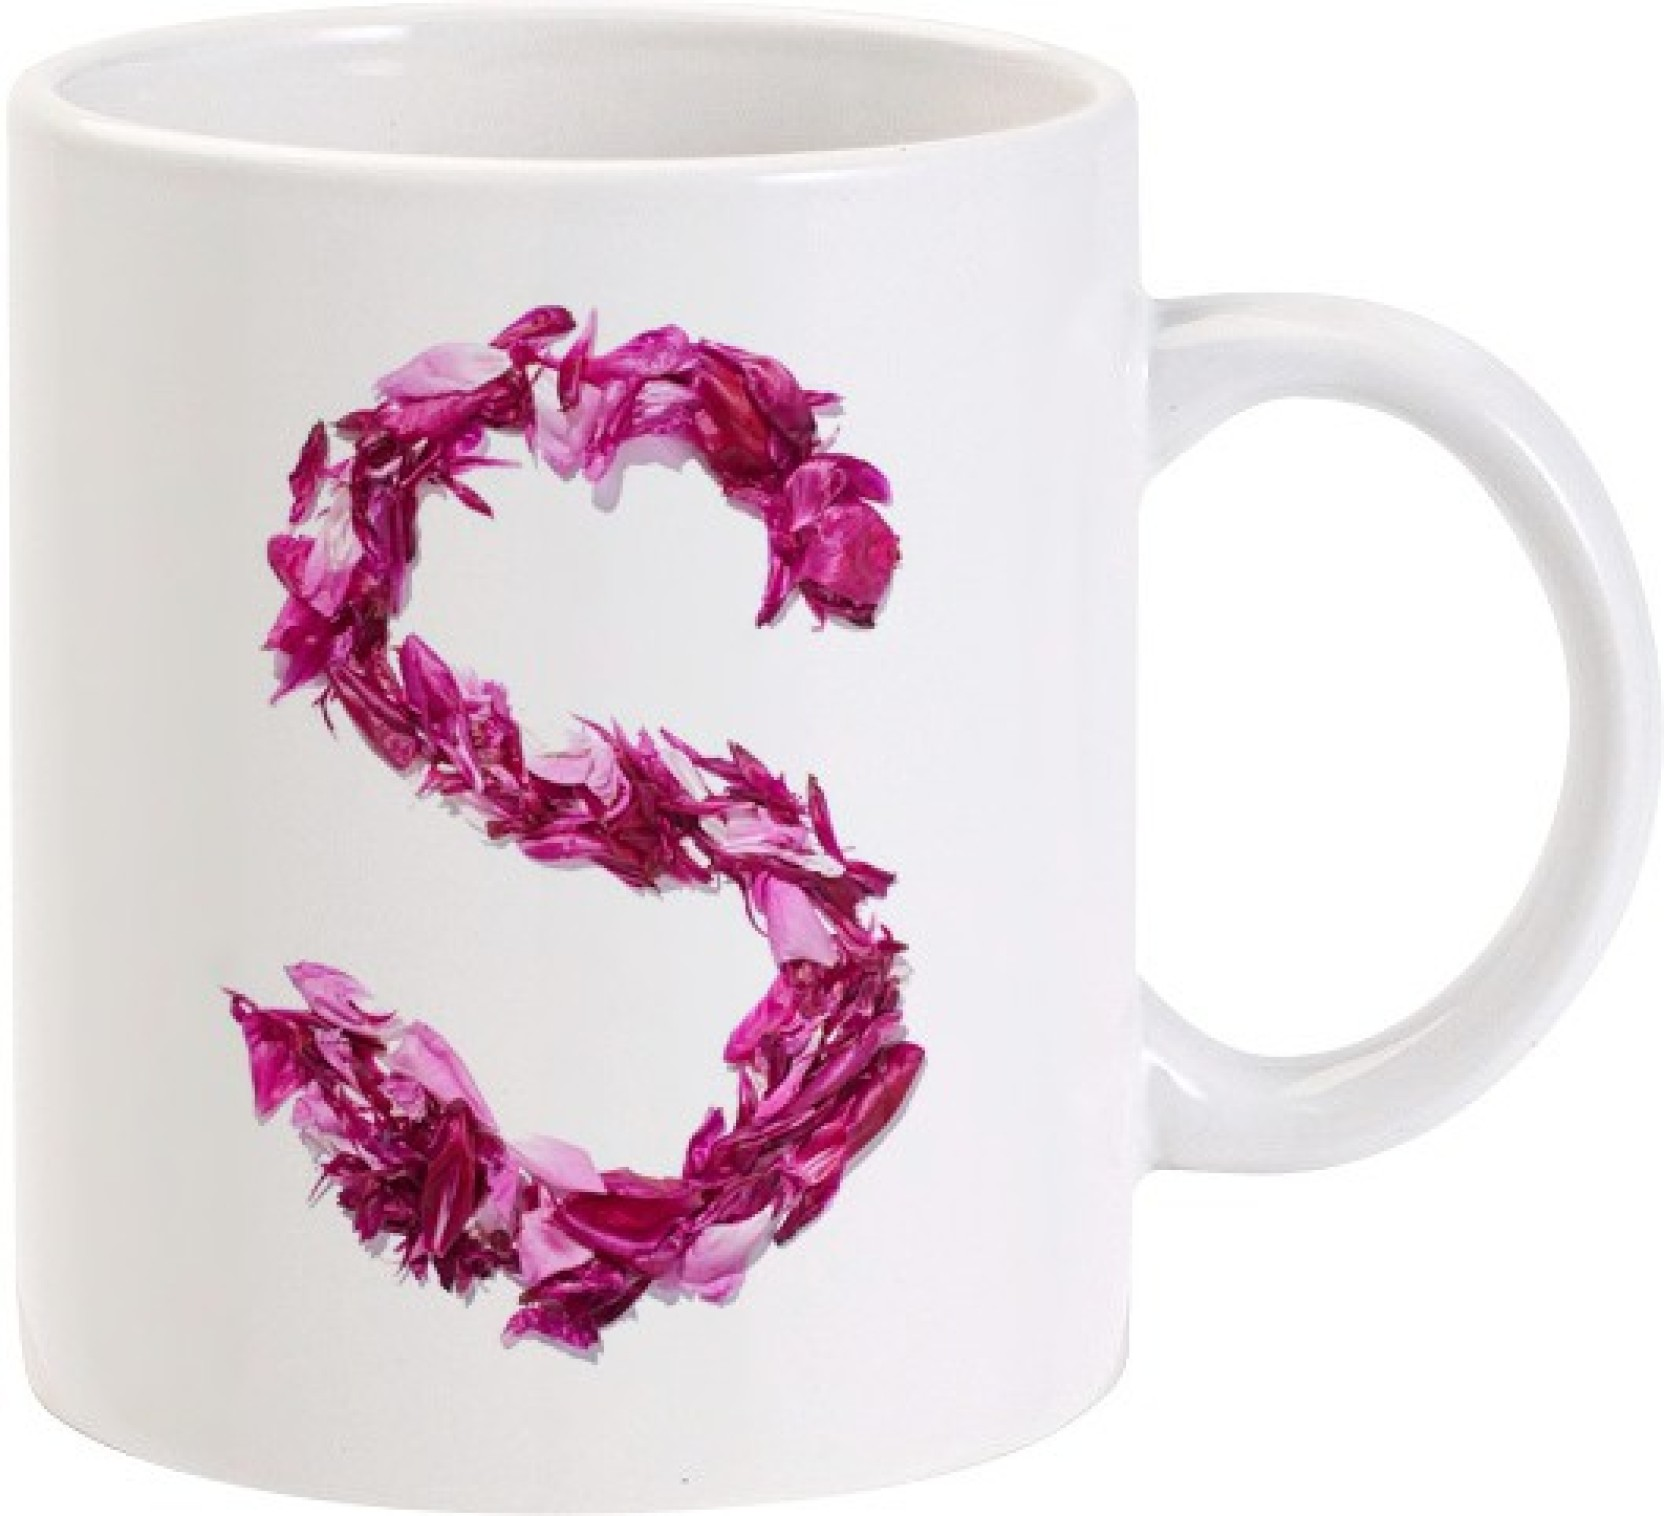 Lolprint S Flower Alphabet Letter Name Ceramic Mug Price In India